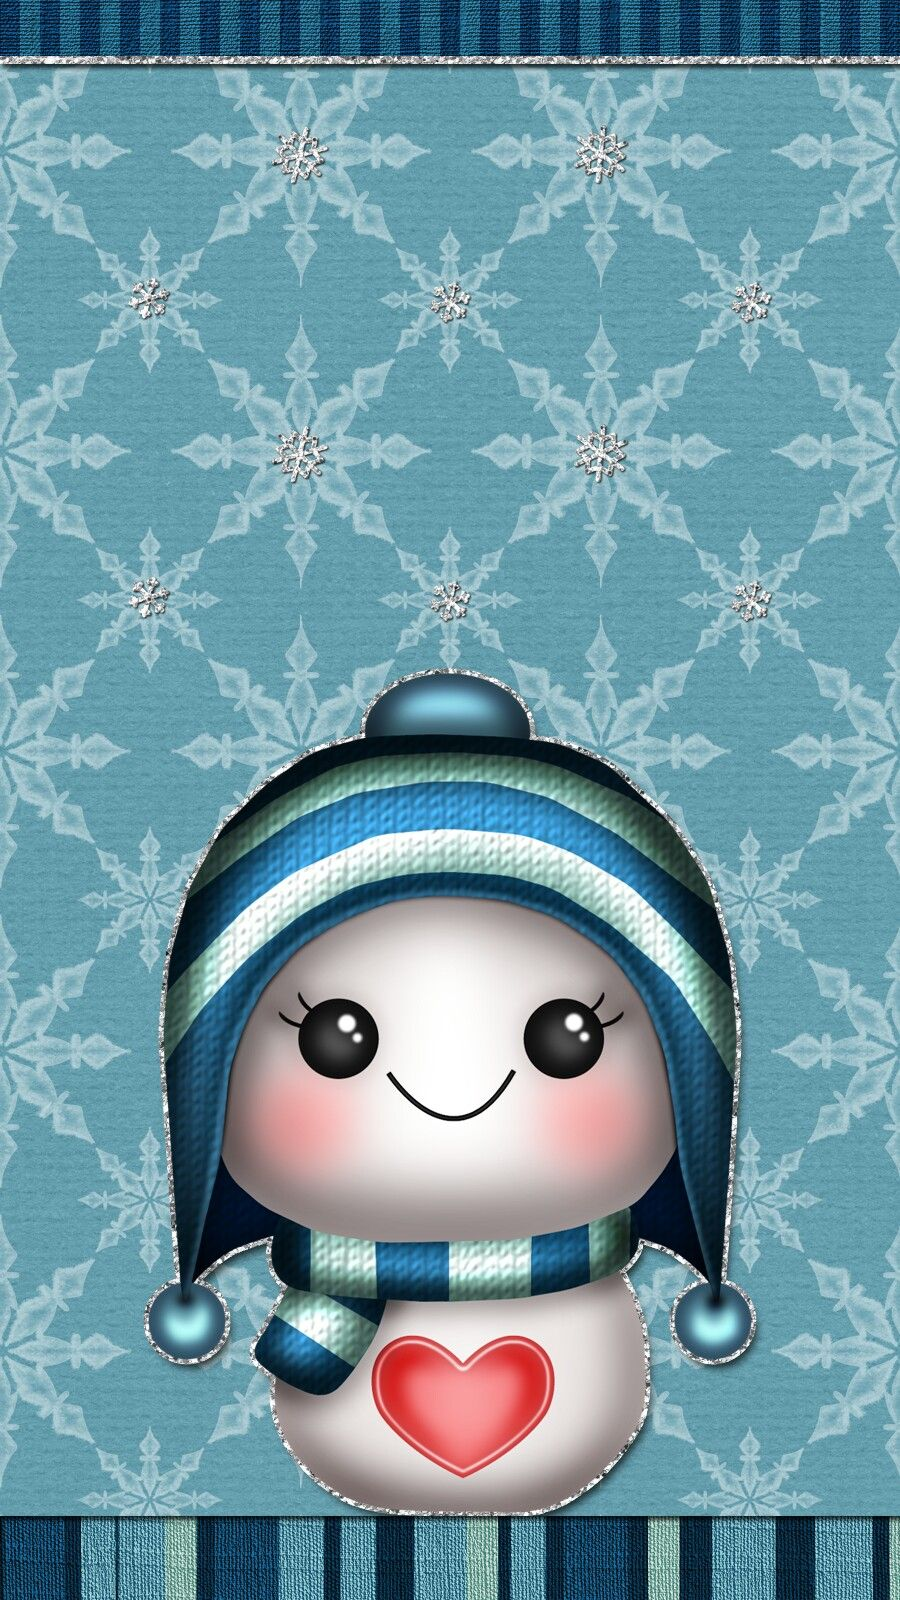 Winter Wallpaper Iphone Android Cute Cute Walls By Me In